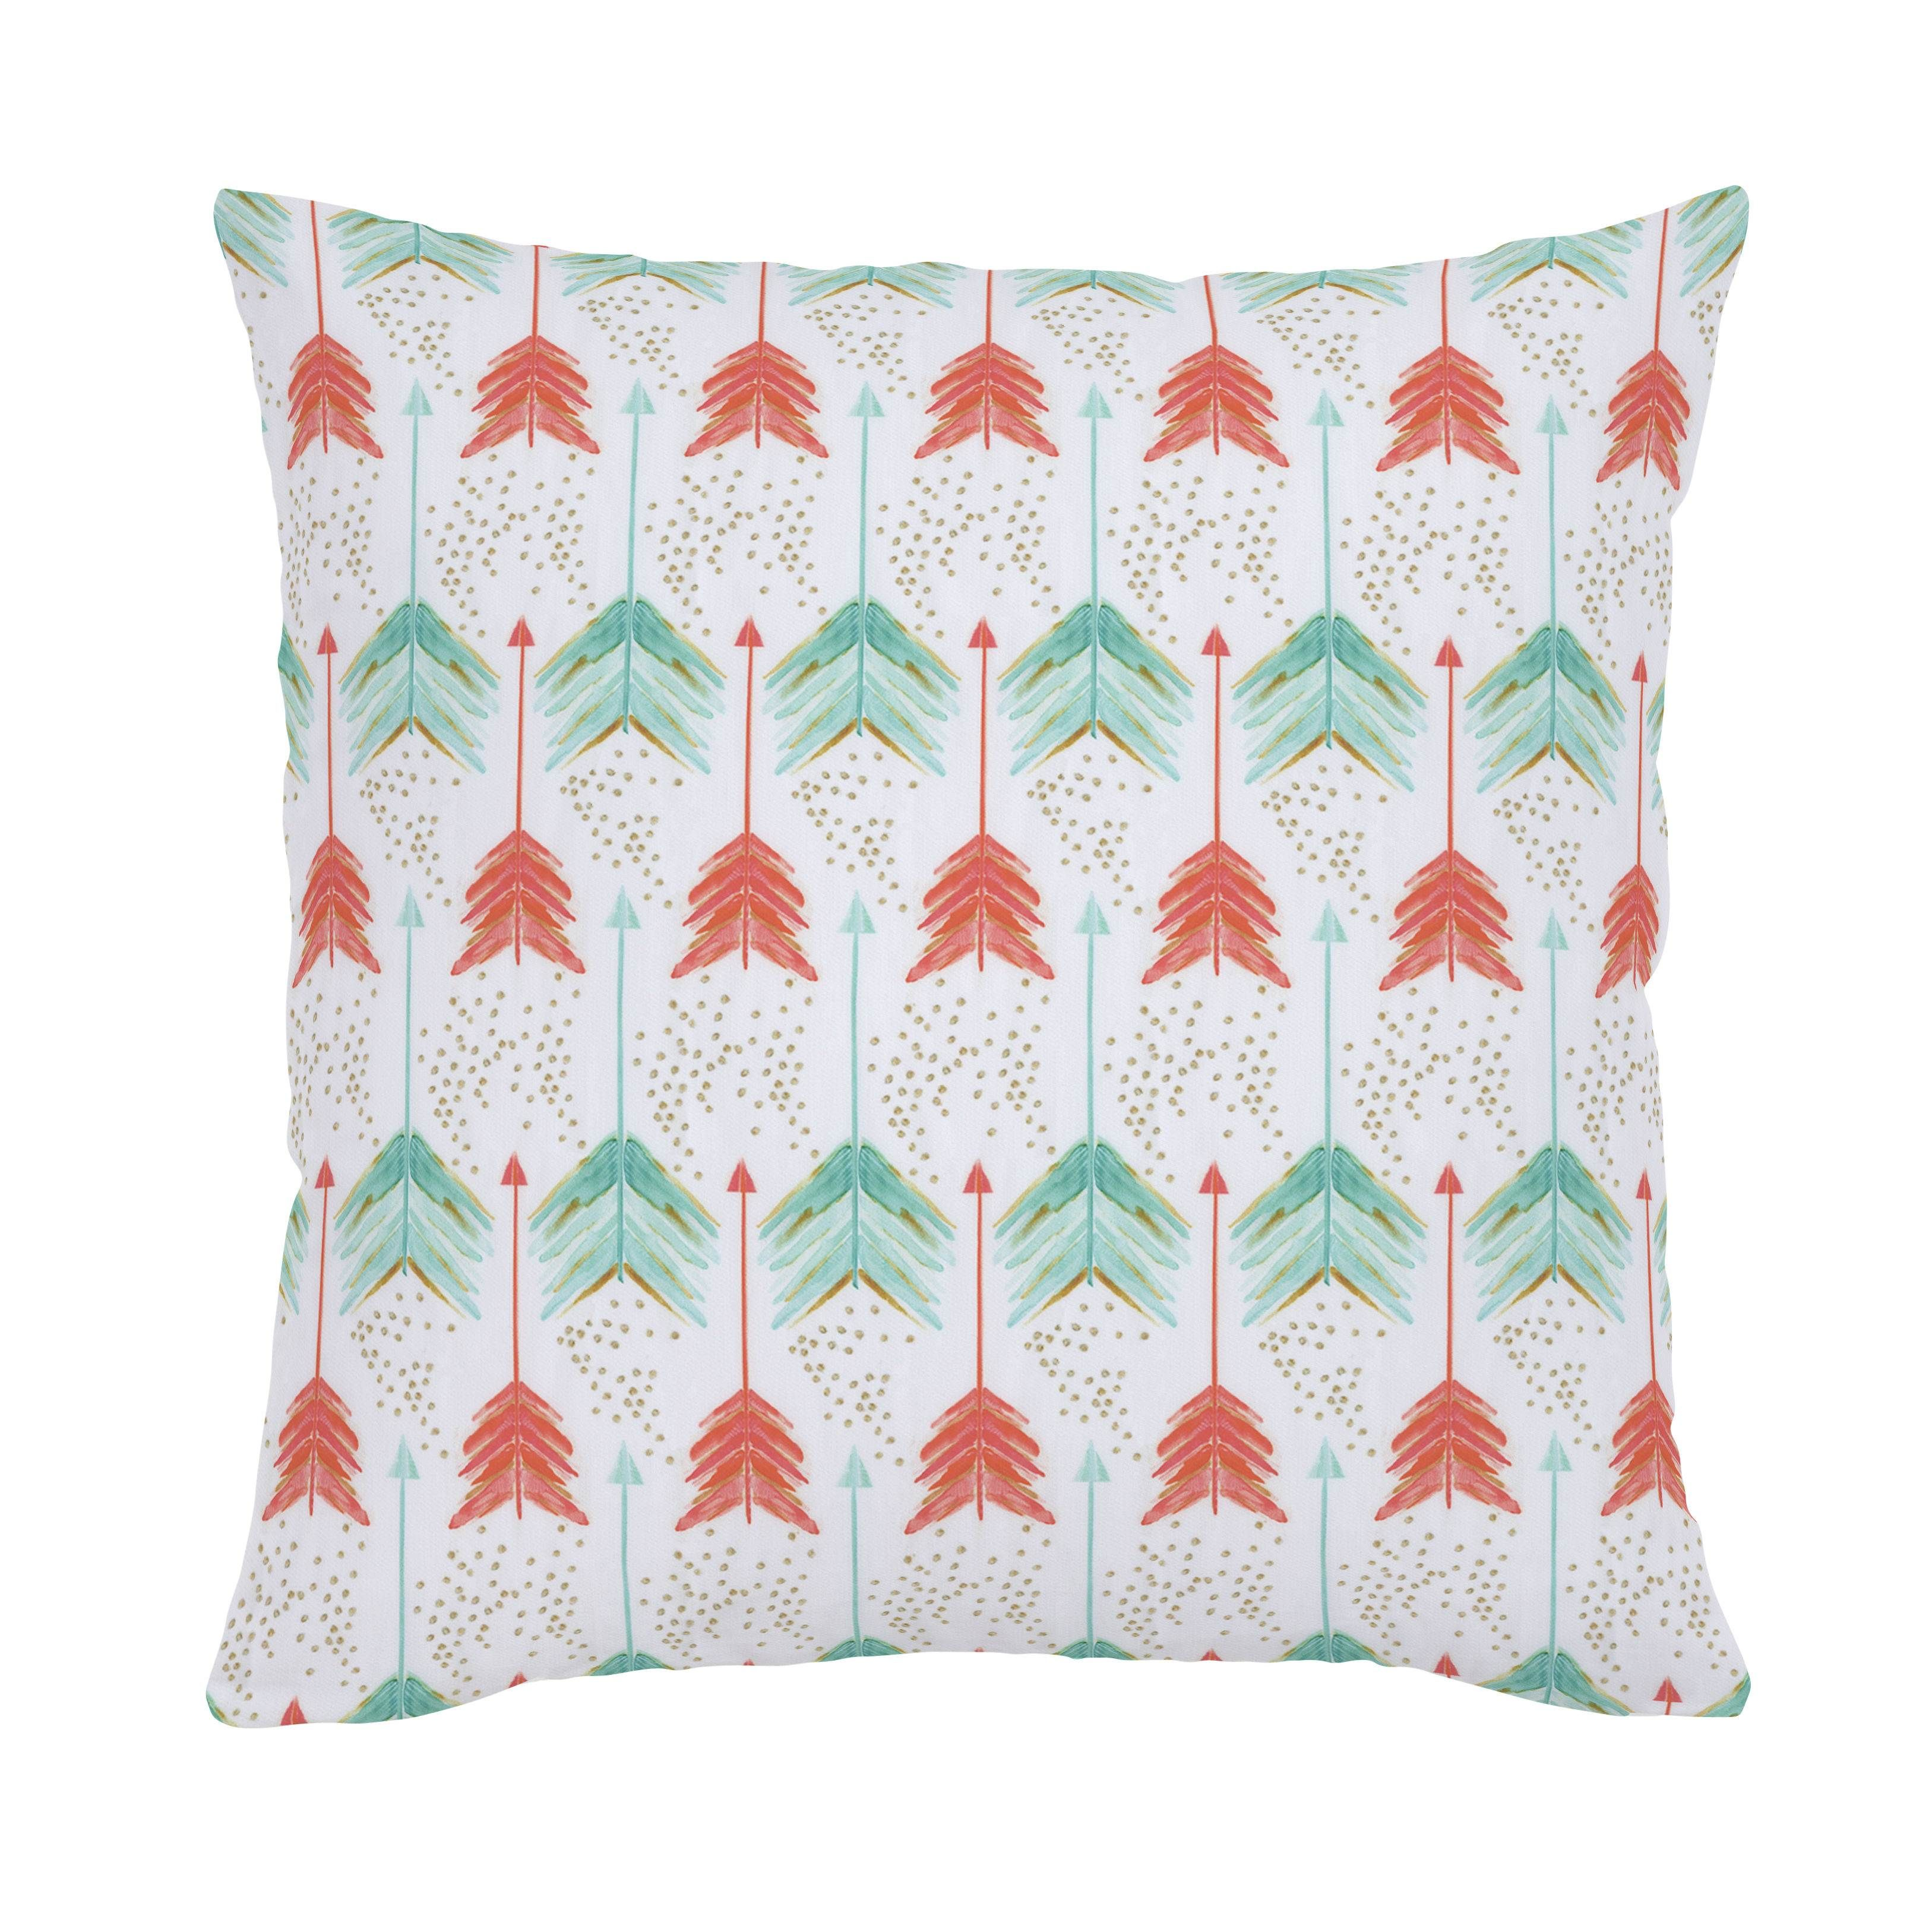 Coral And Teal Arrows Throw Pillow In 2019 Bedding Coral